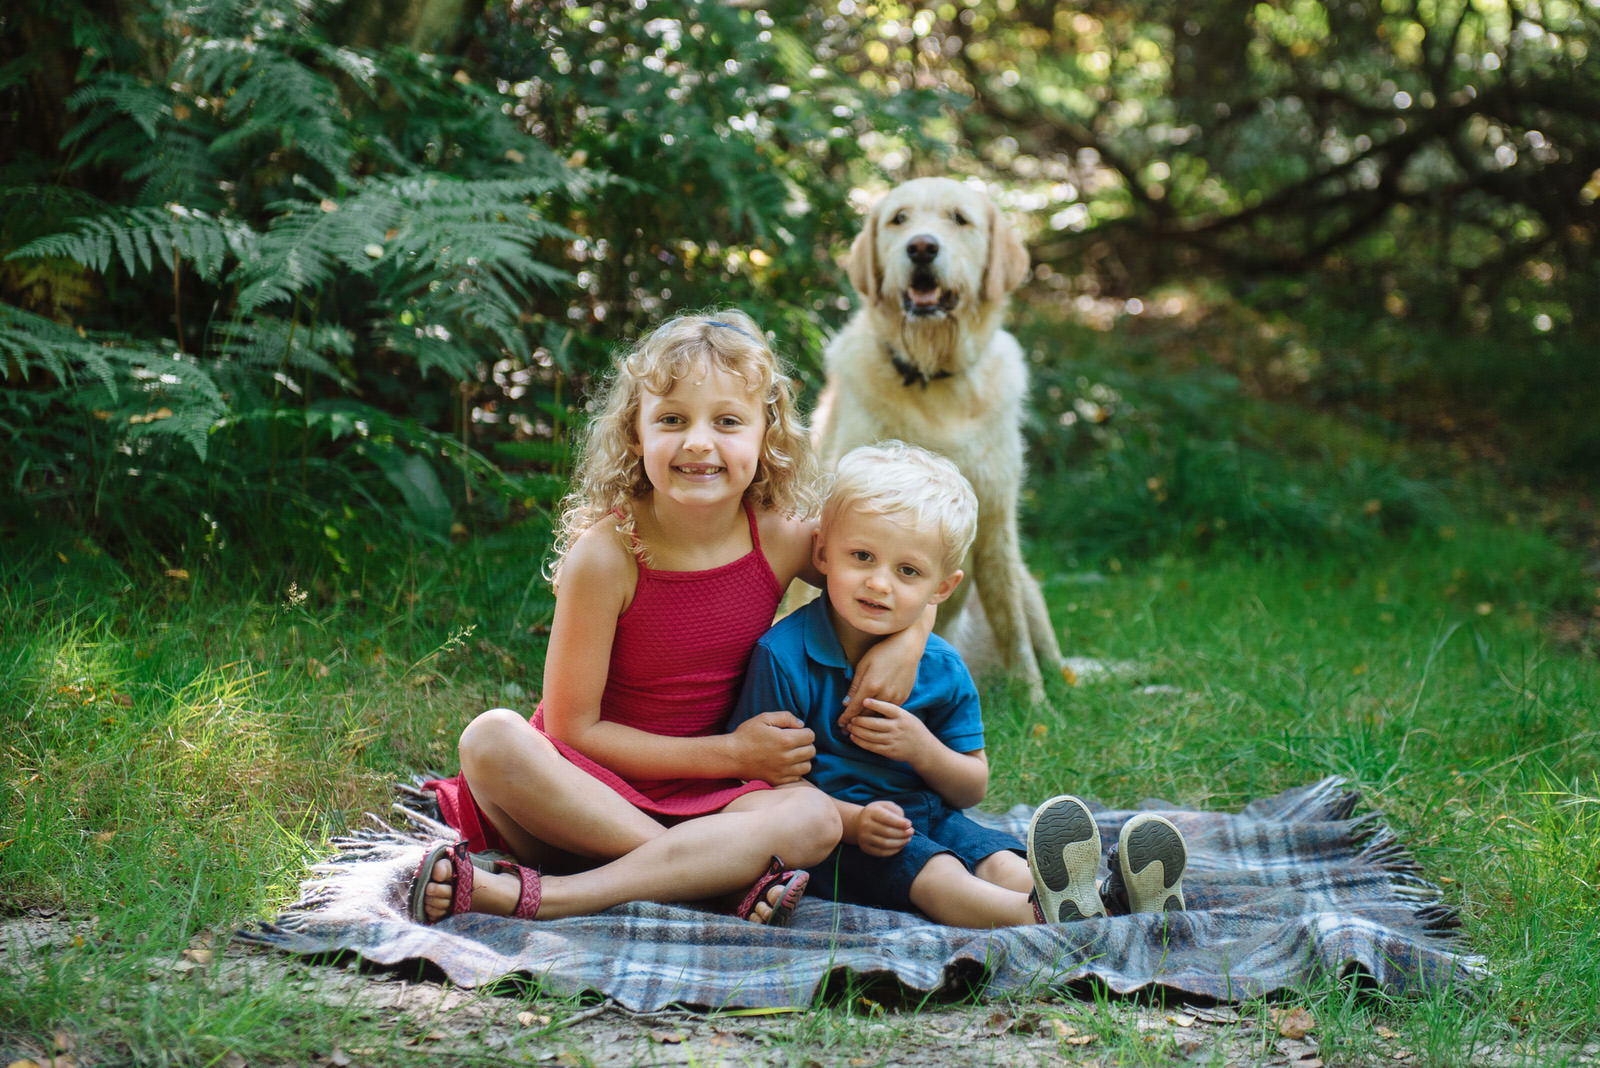 Children's photography including pets